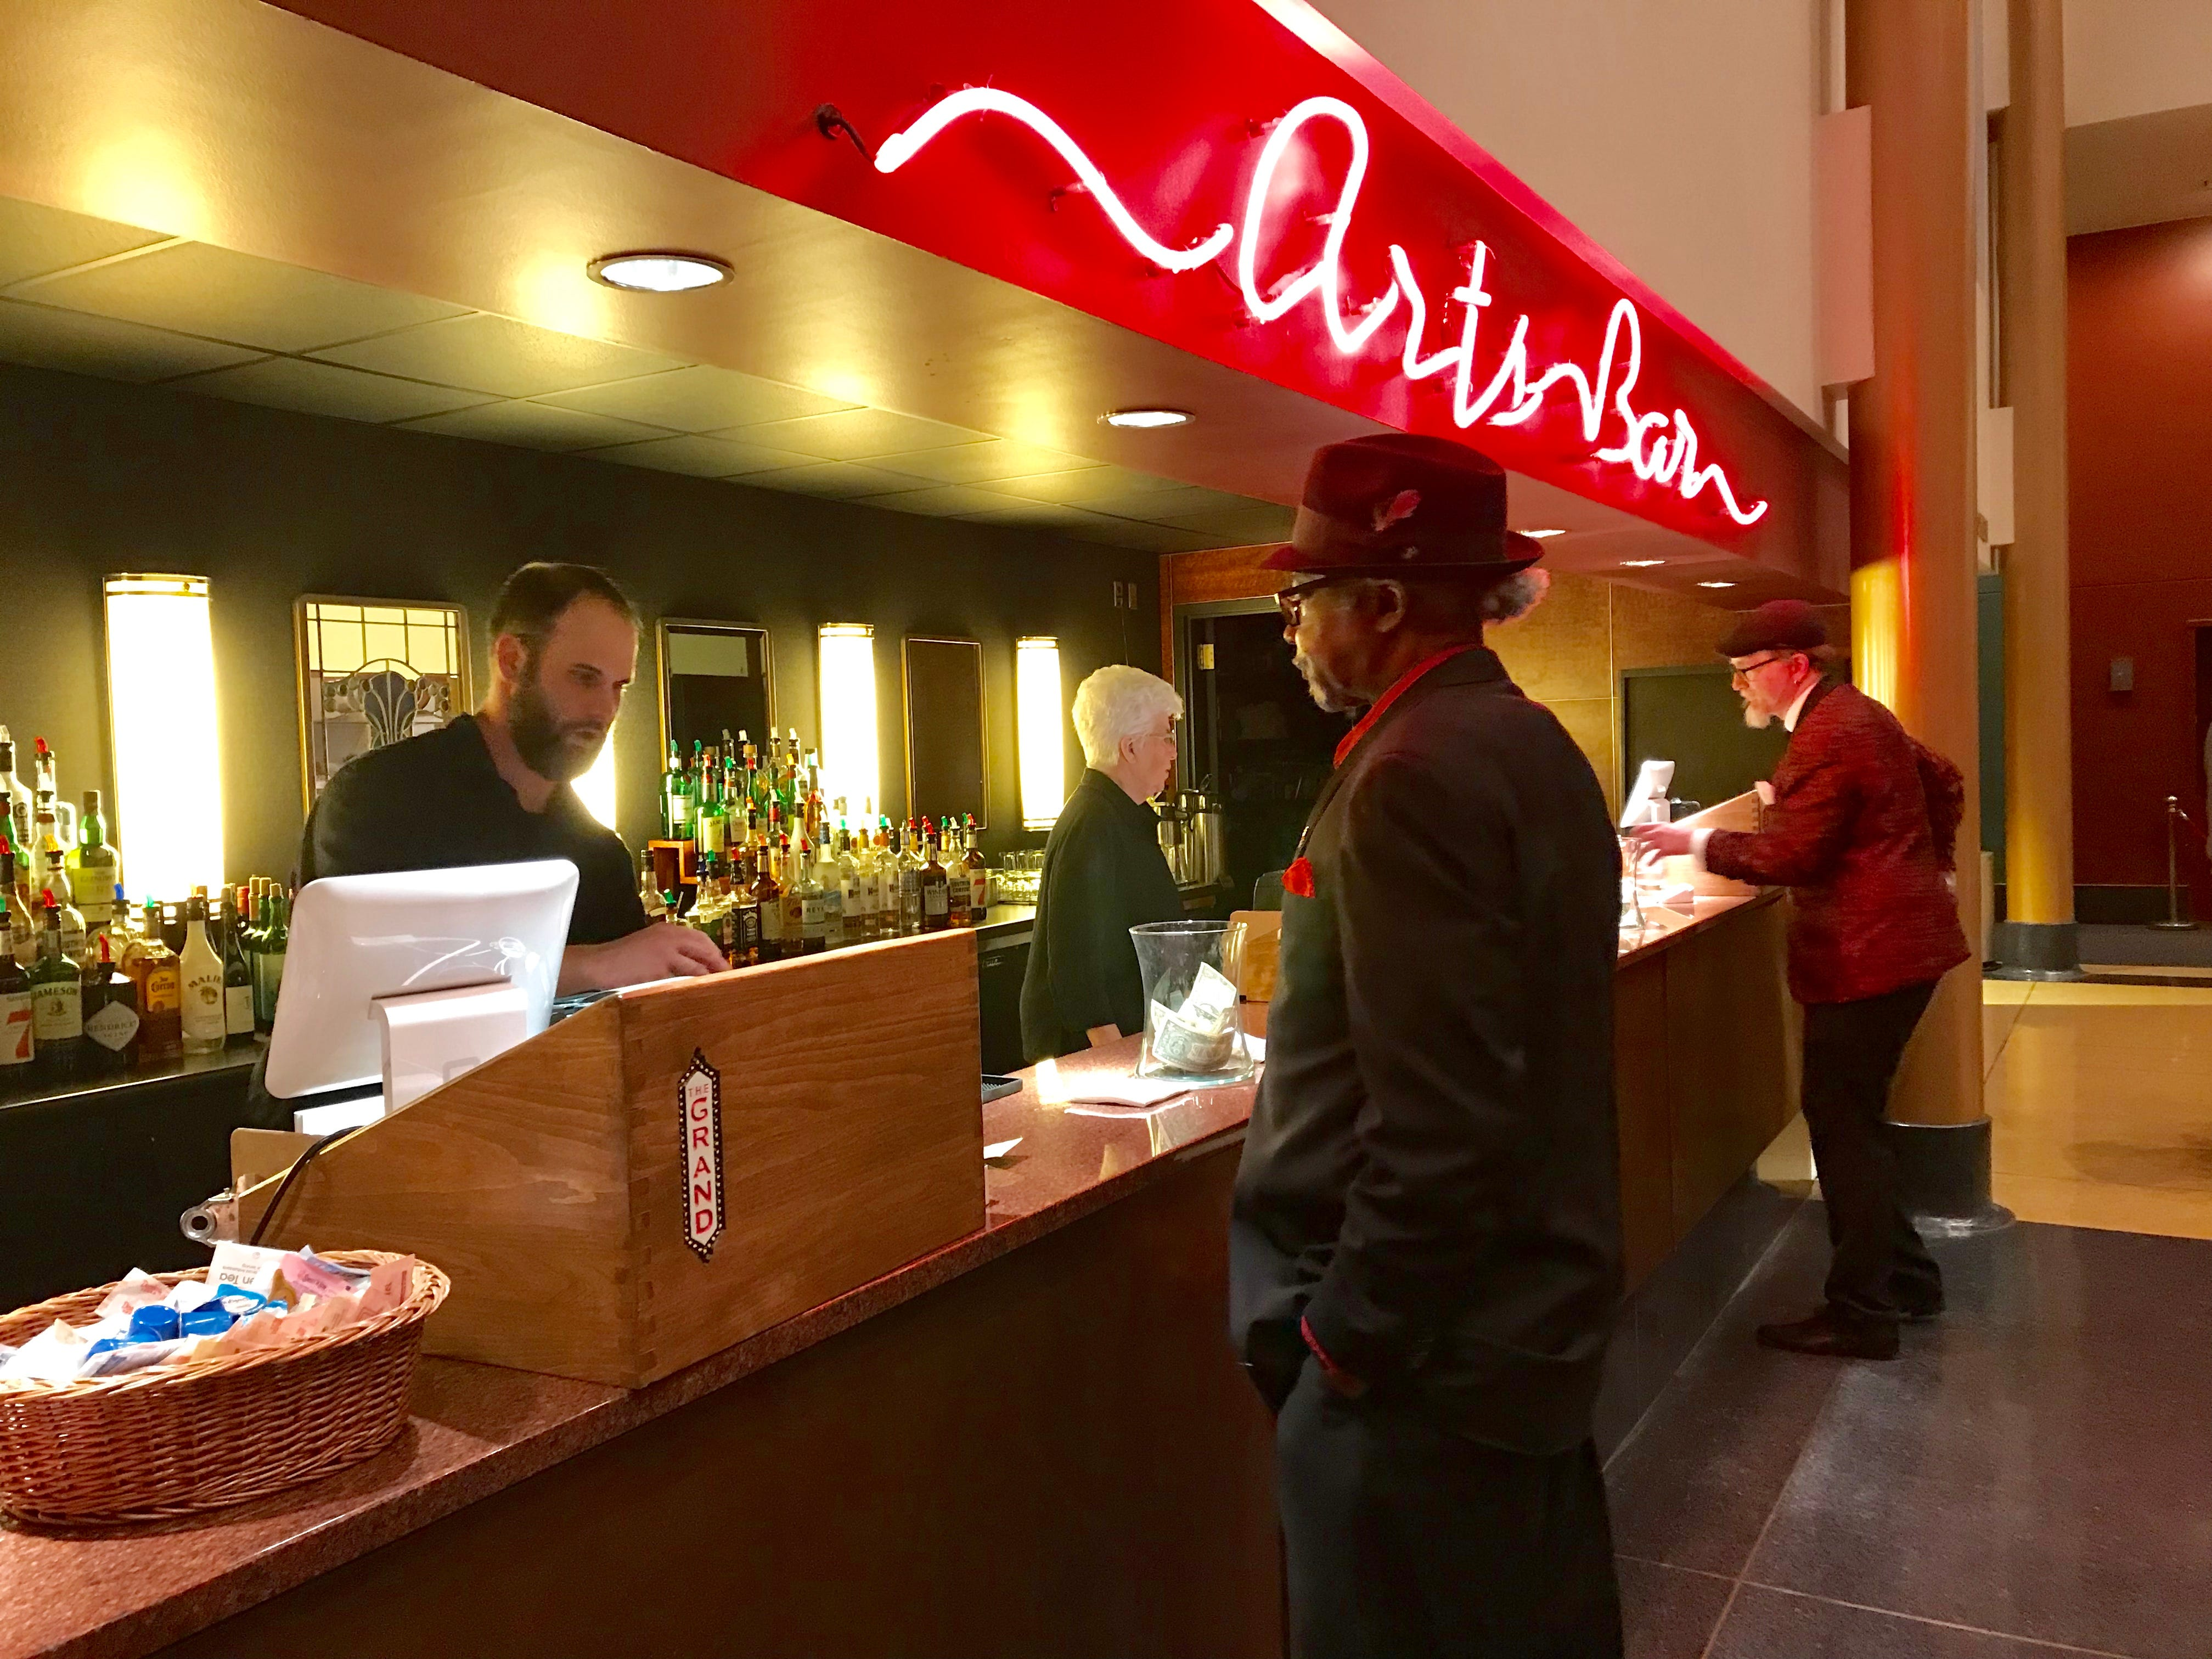 People order from the bar at the MLK Day celebration at the Grand Theater in Wausau.